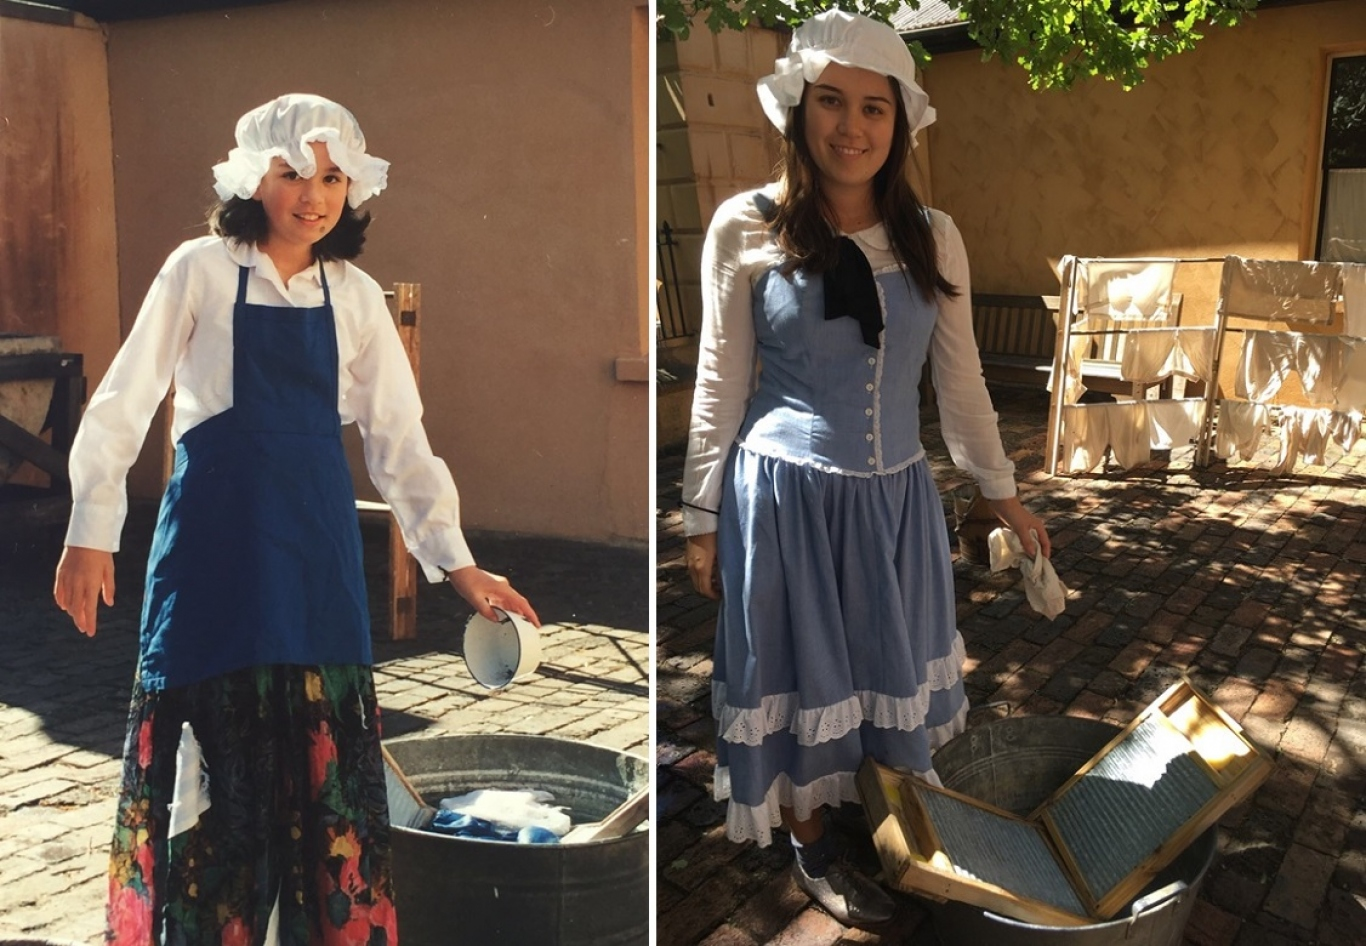 Two images combined into one - left showing subject as student dressed in convict clothing and right showing subject as teacher.